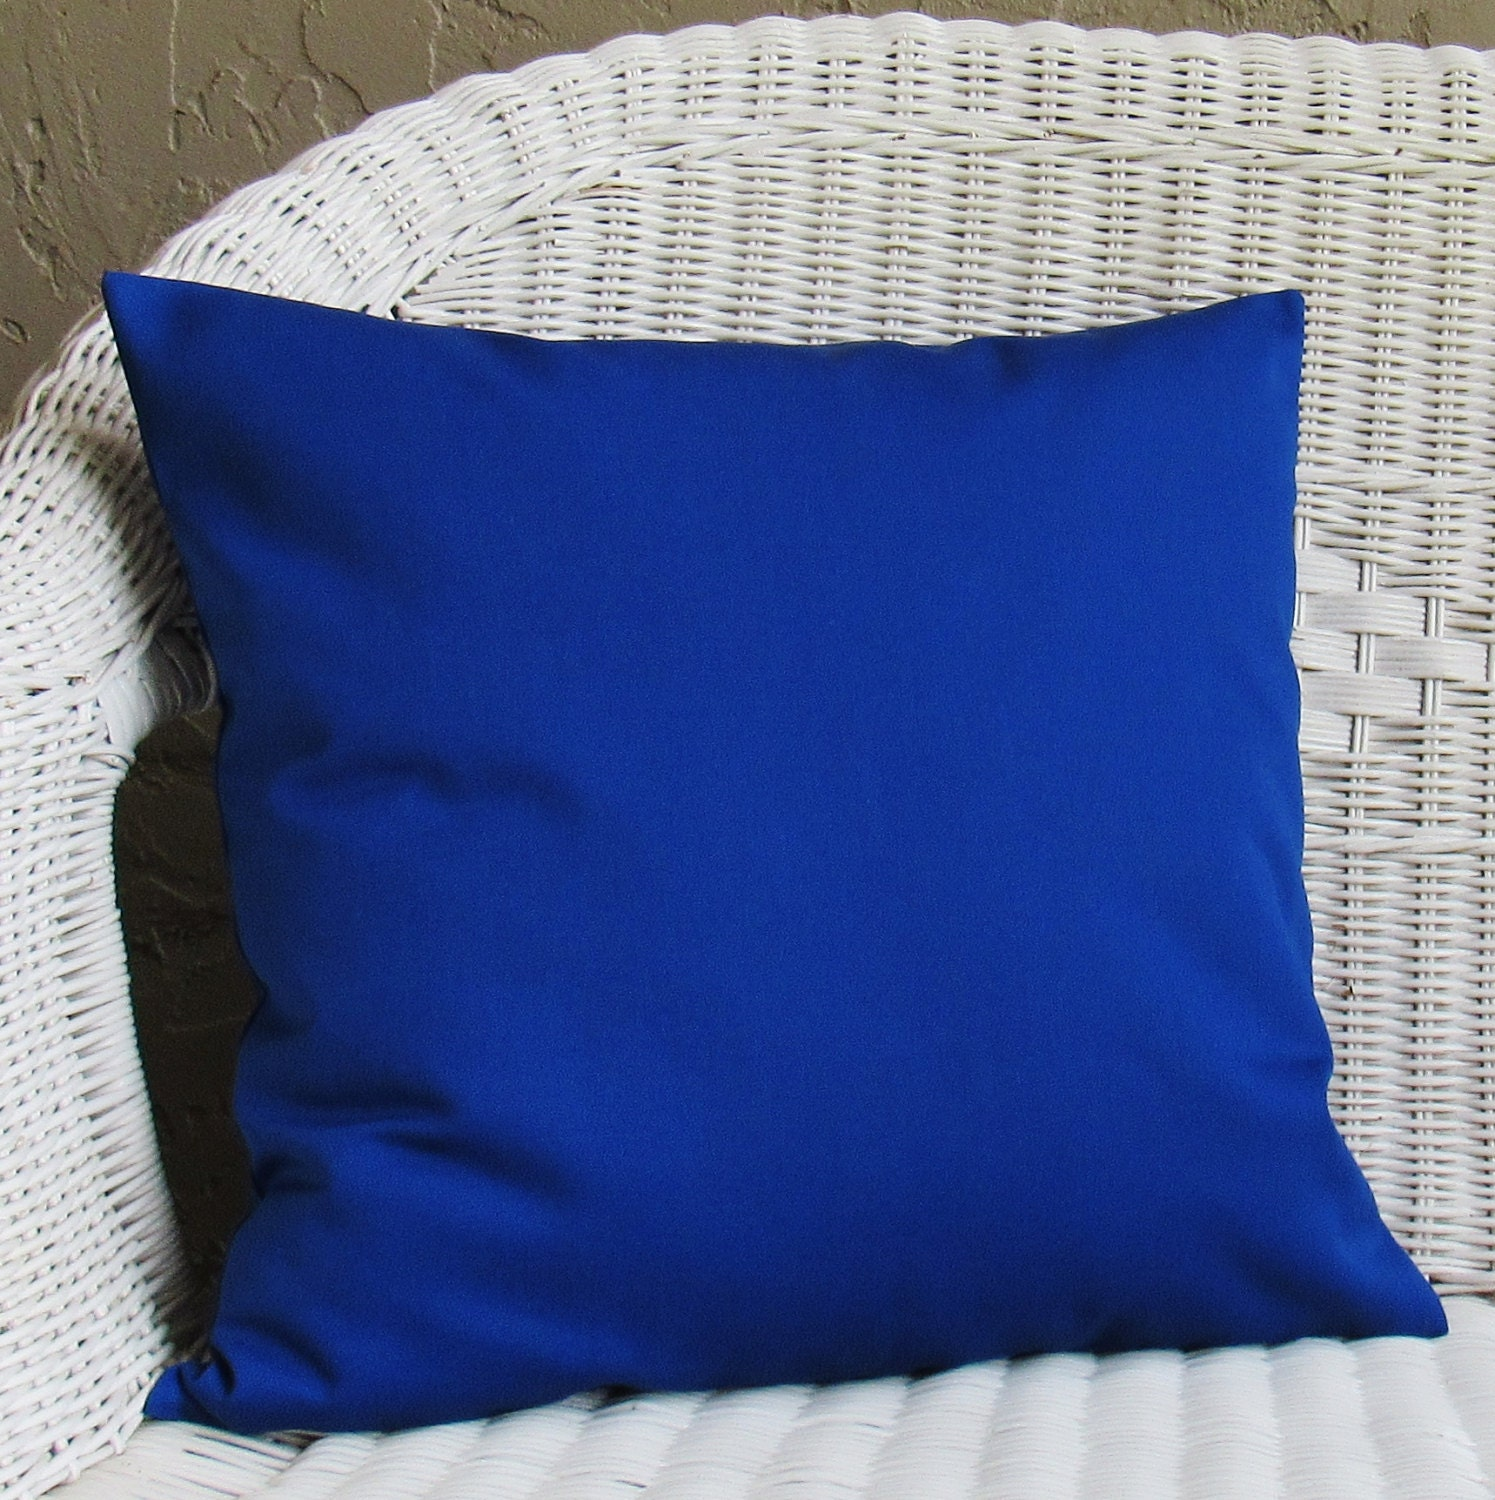 Royal Blue And White Throw Pillows : Royal Blue Cobalt Throw Pillow Cover Decorative Accent Toss